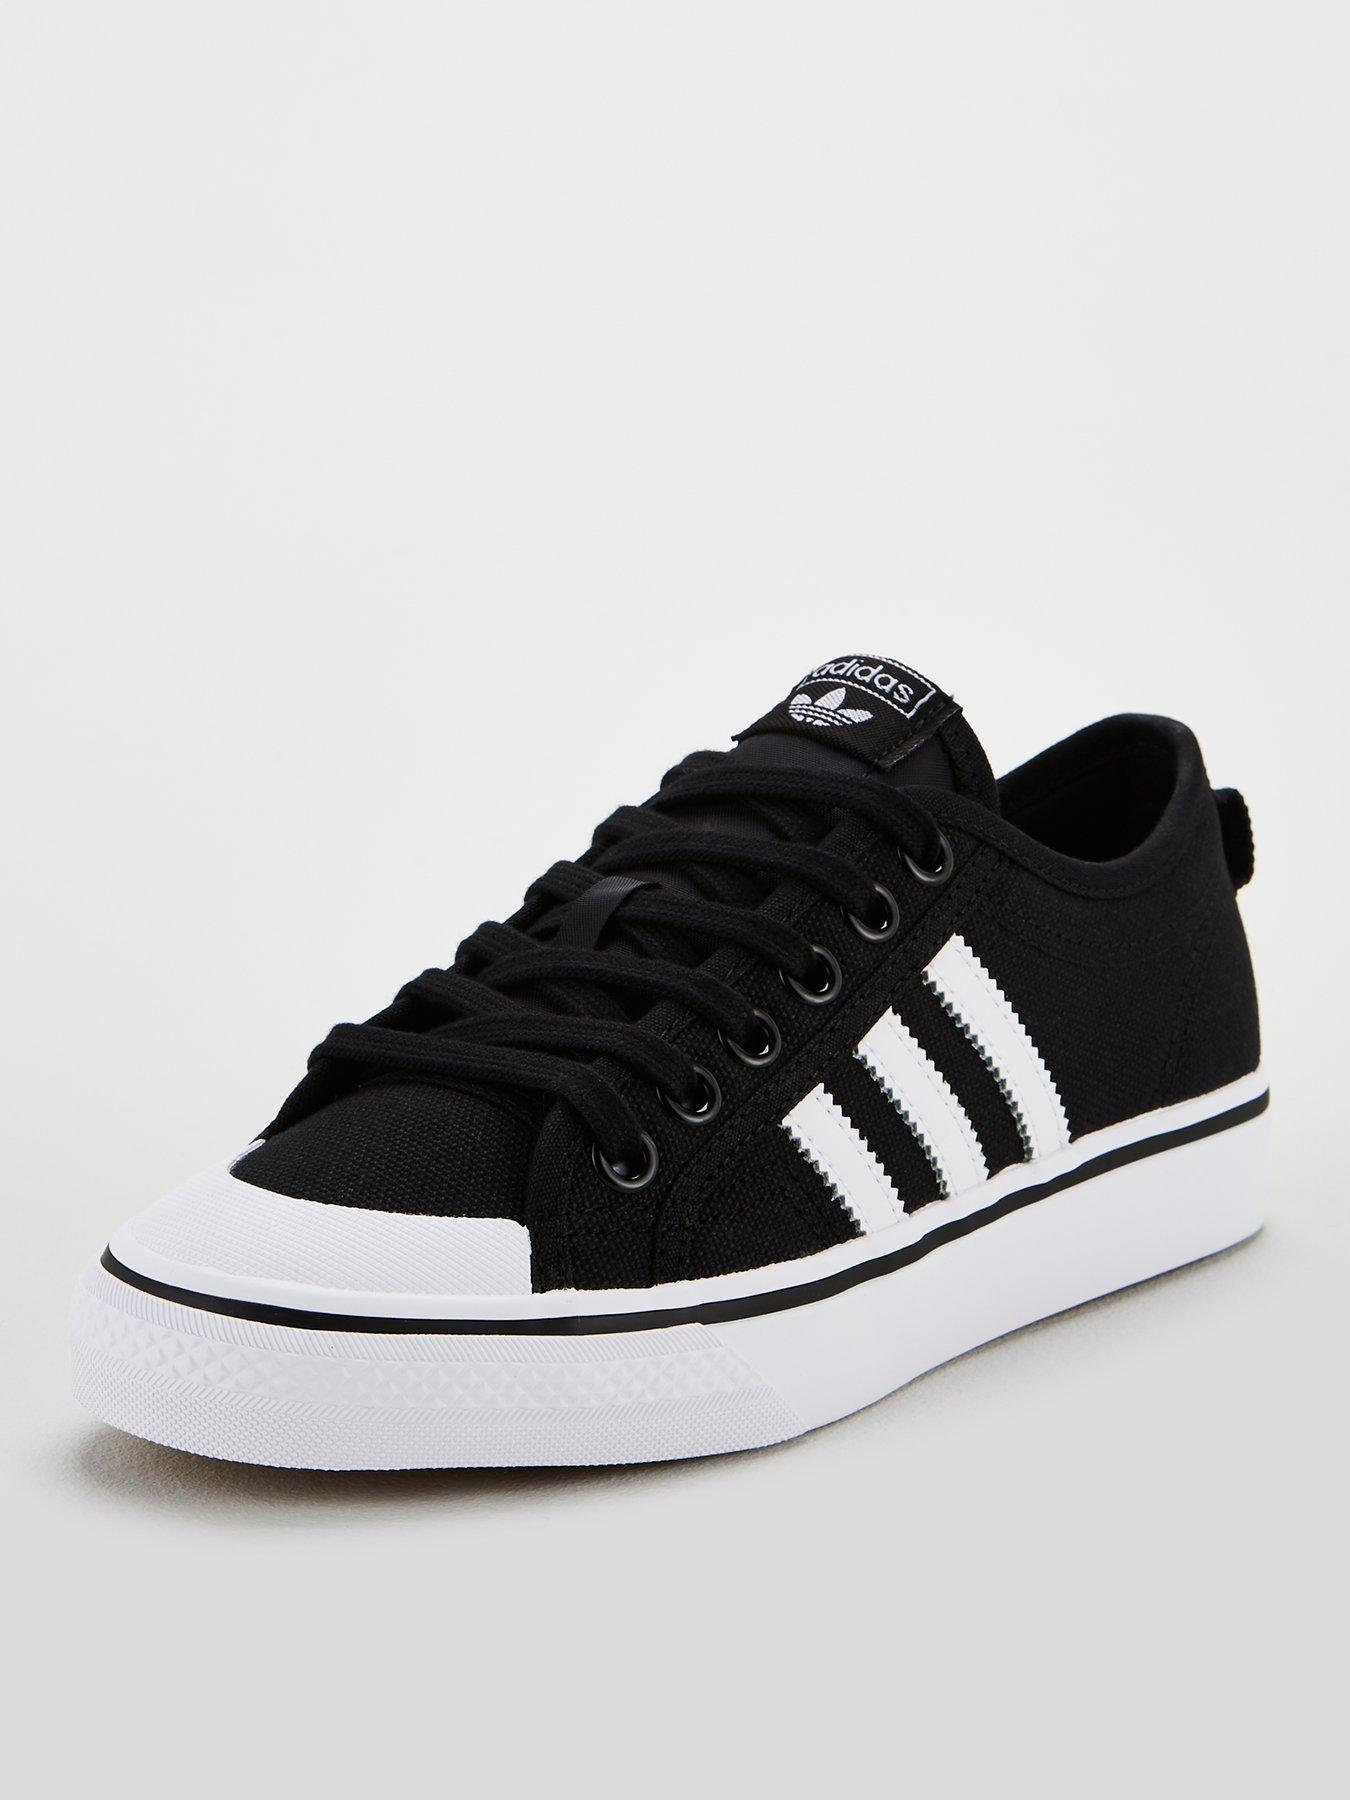 womens black adidas trainers